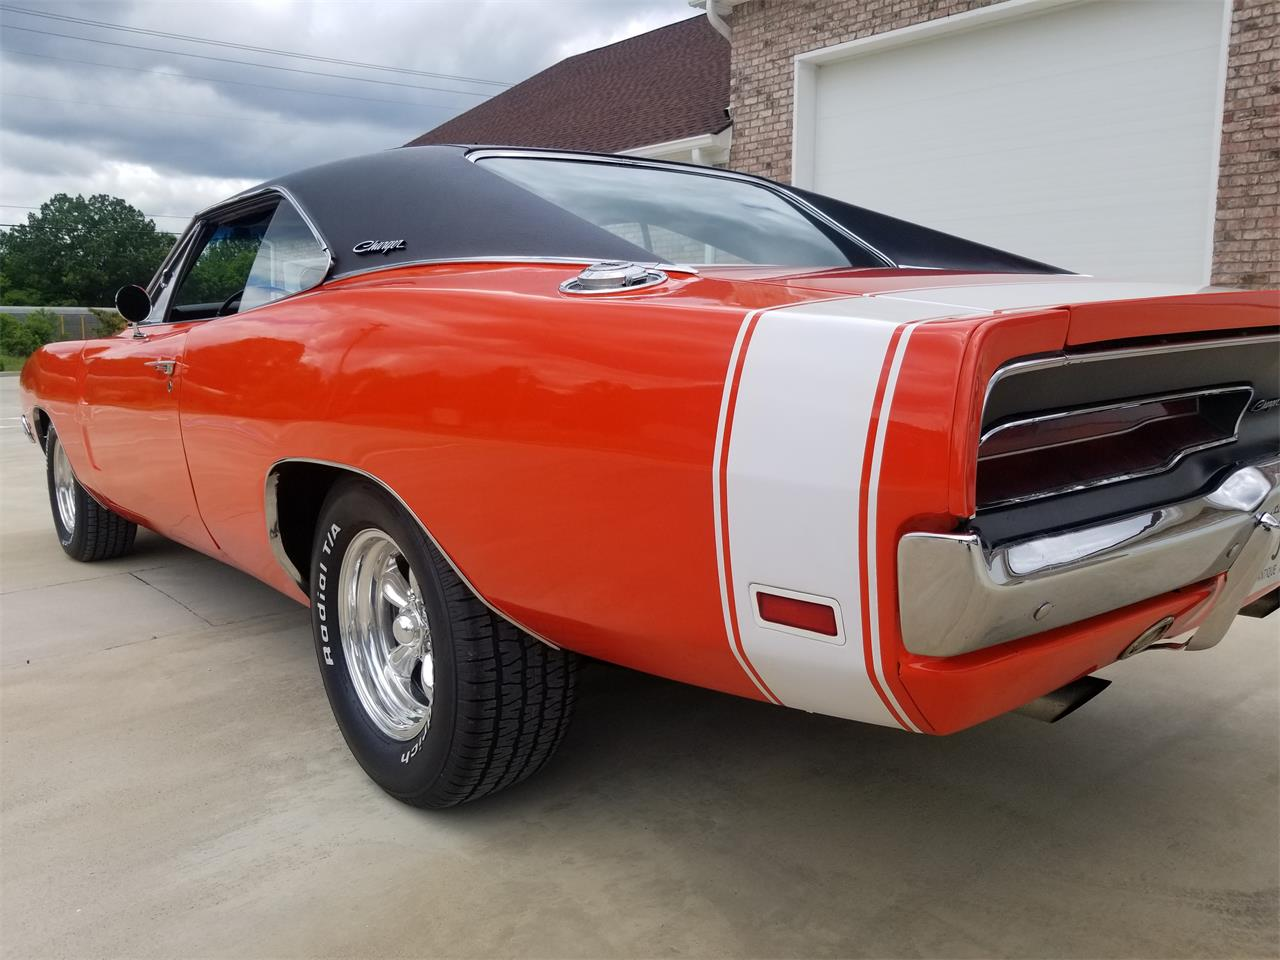 Large Picture of Classic 1969 Charger - $47,500.00 - Q45J